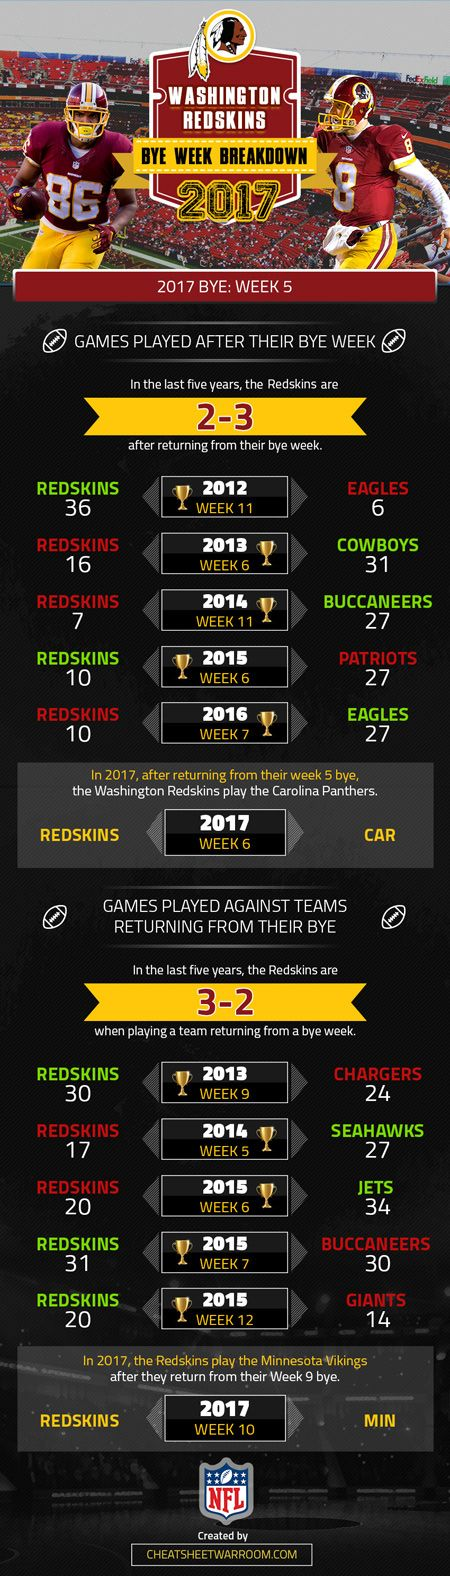 Washington Redskins 2017 bye week information and statistical history.